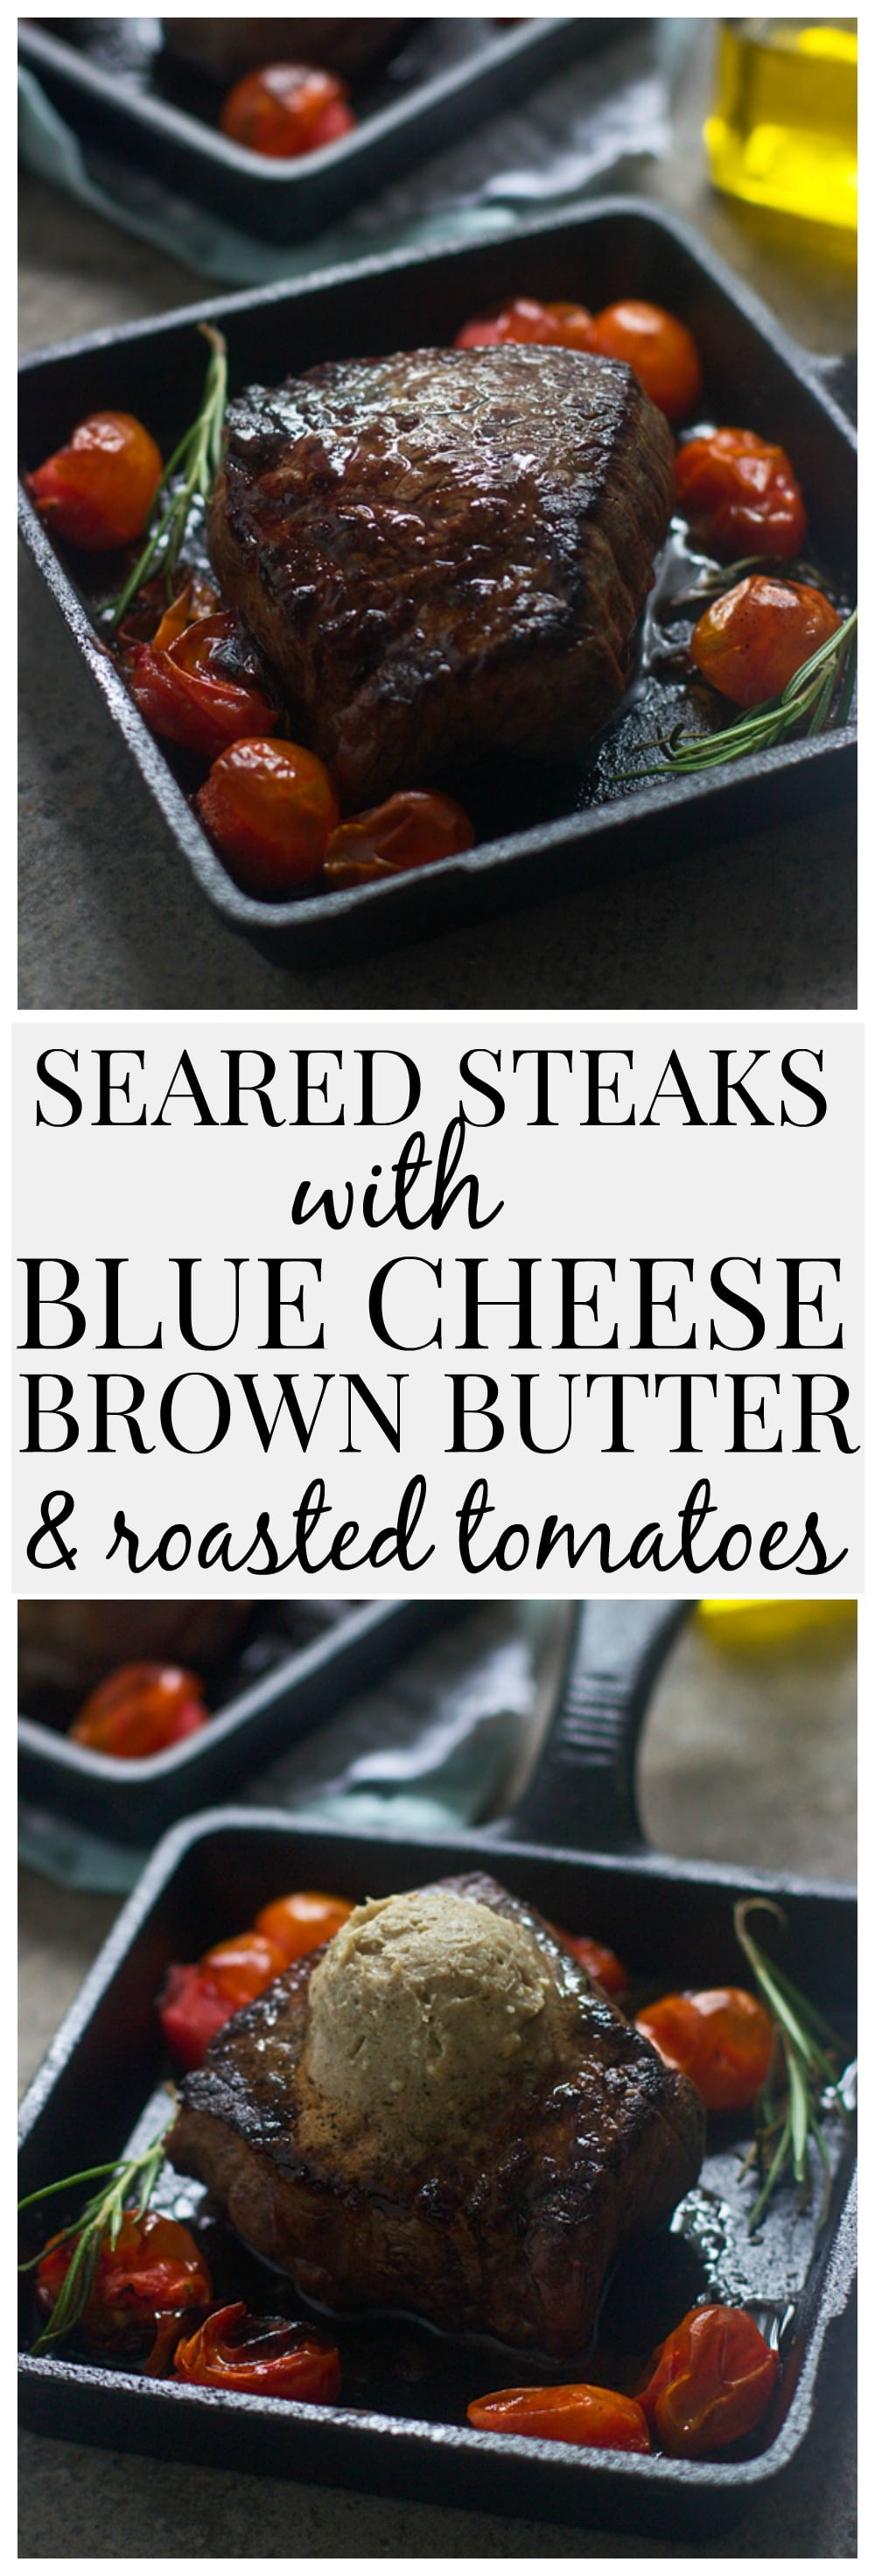 Seared Filets with Blue Cheese Brown Butter, Rosemary and Roasted Tomatoes